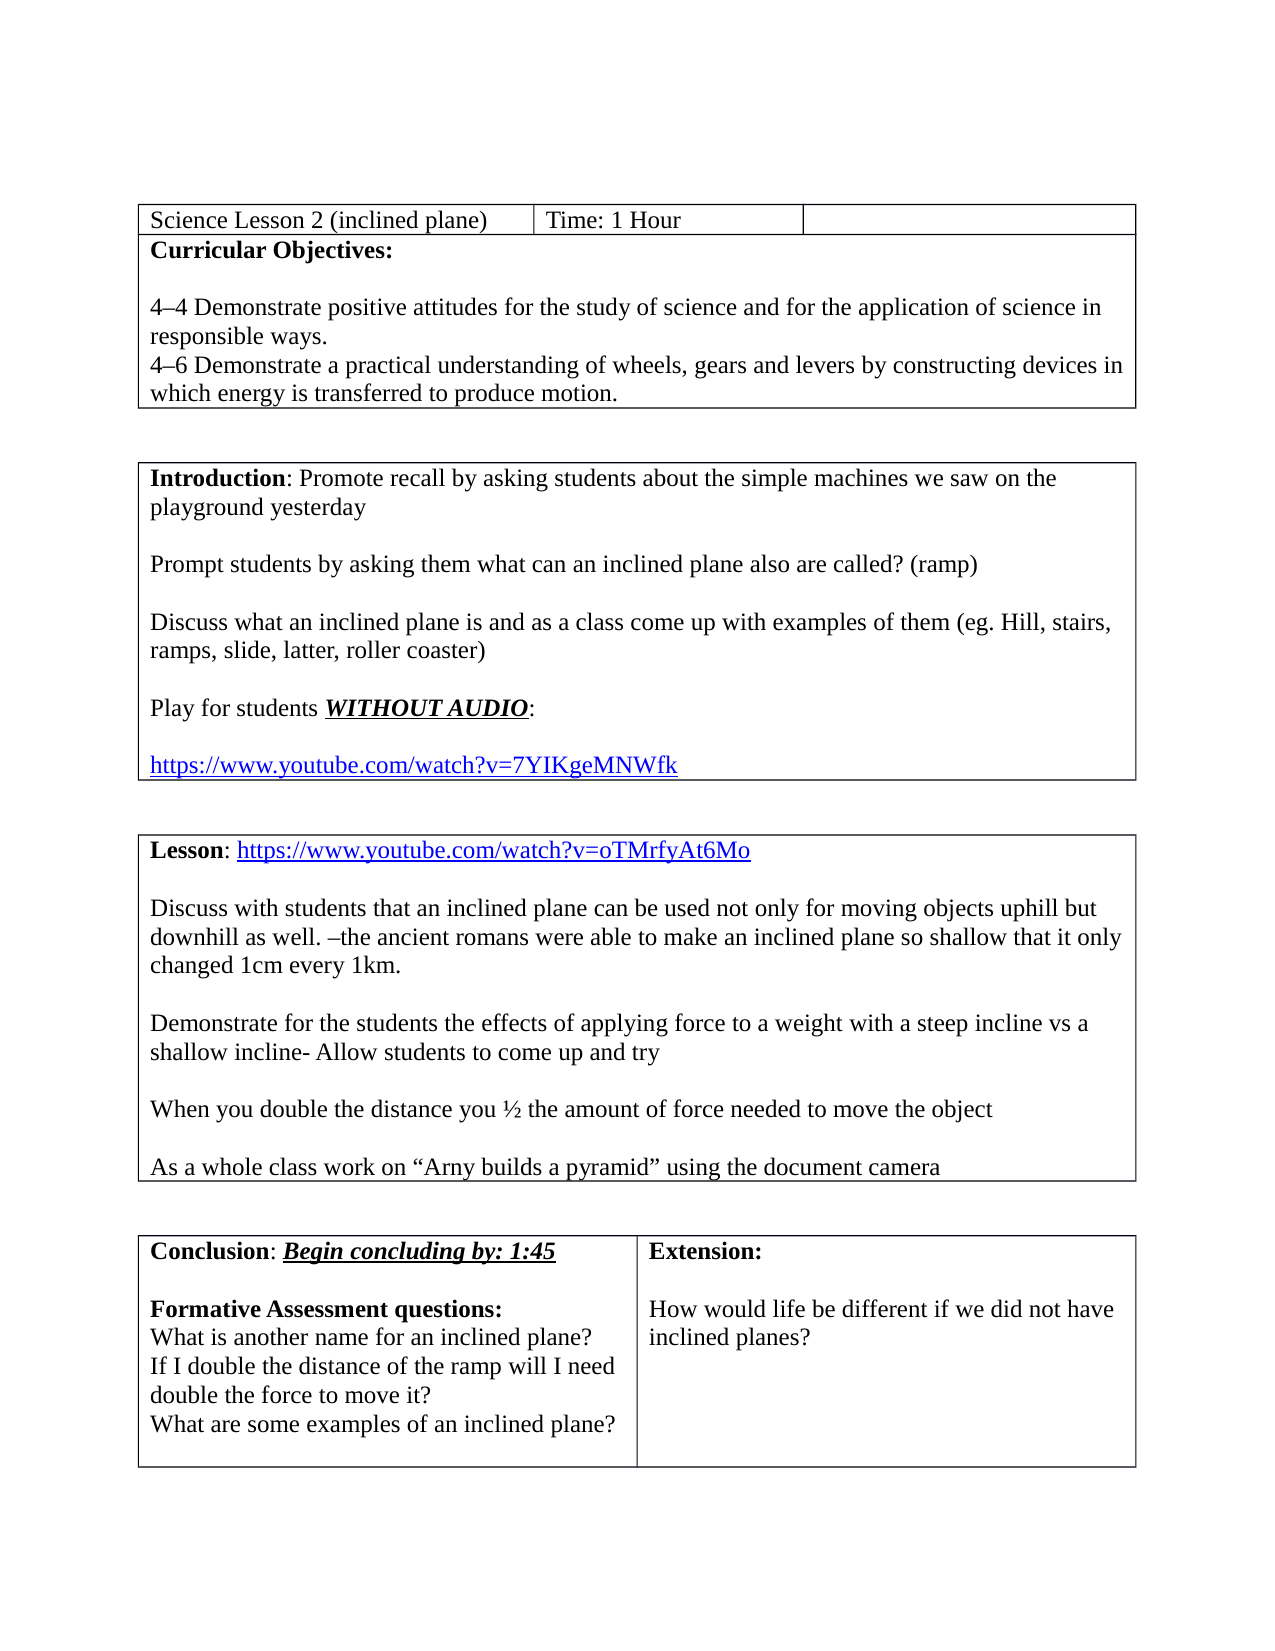 worksheet Inclined Plane Worksheet inclined plane lesson resource preview grade 4 wheels and levers preview